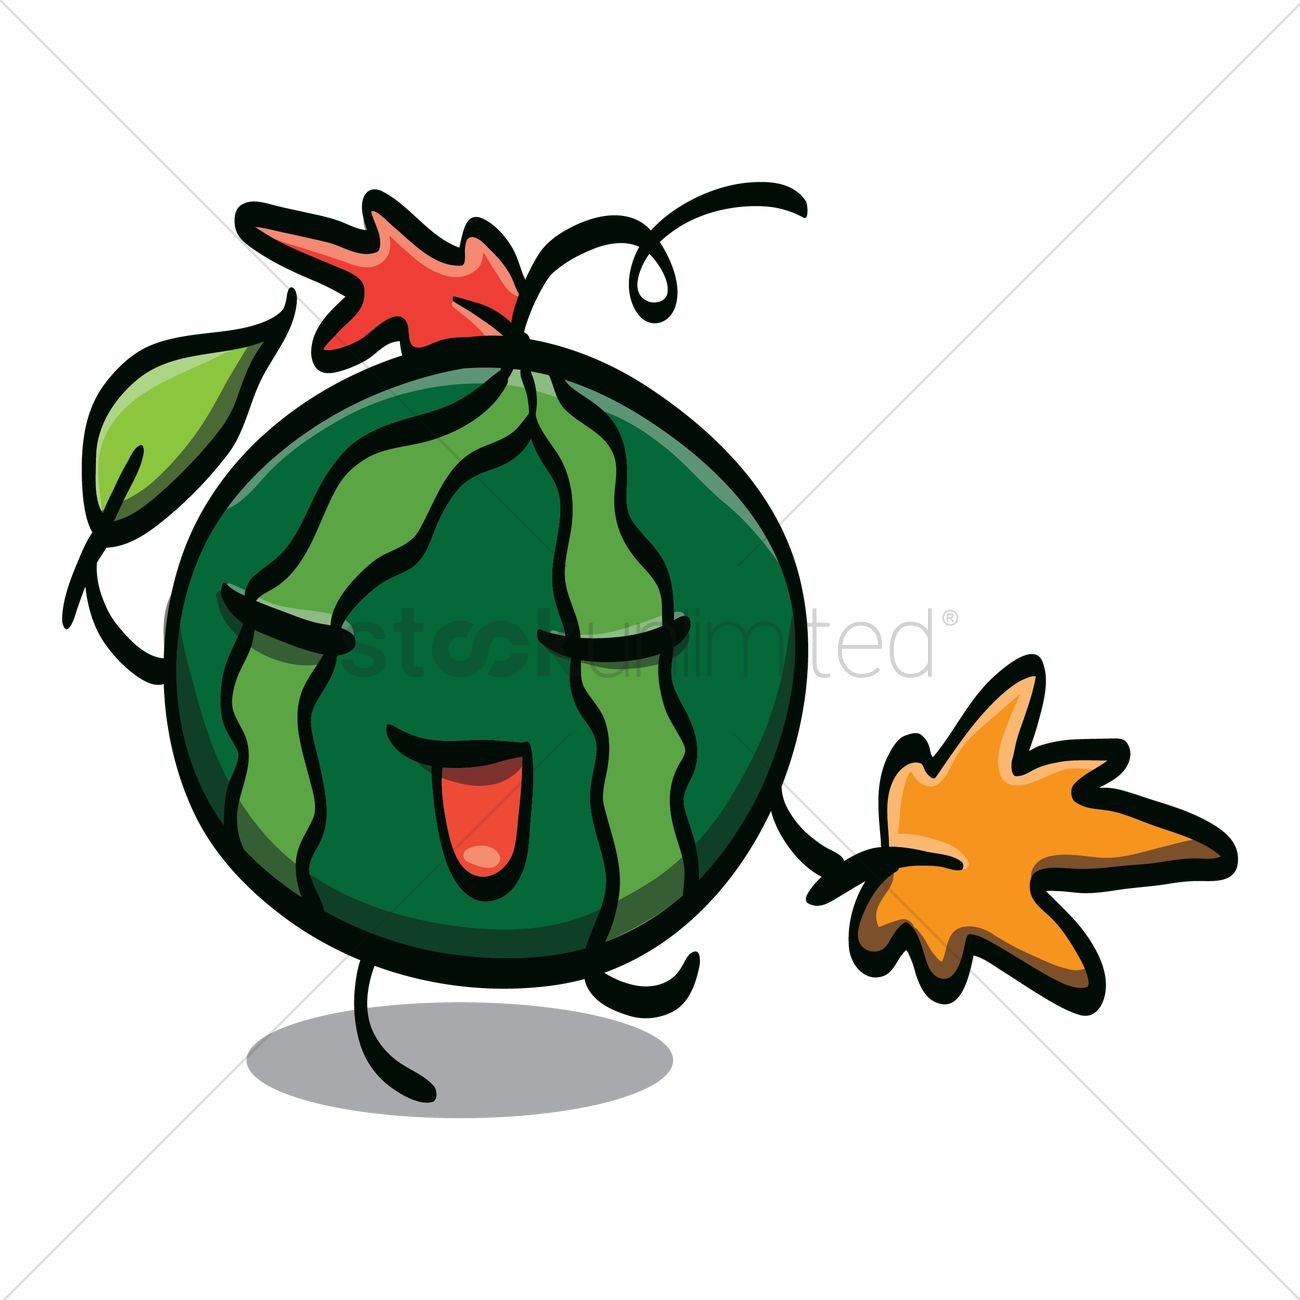 Watermelon cartoon character dancing with leaves Vector Image.